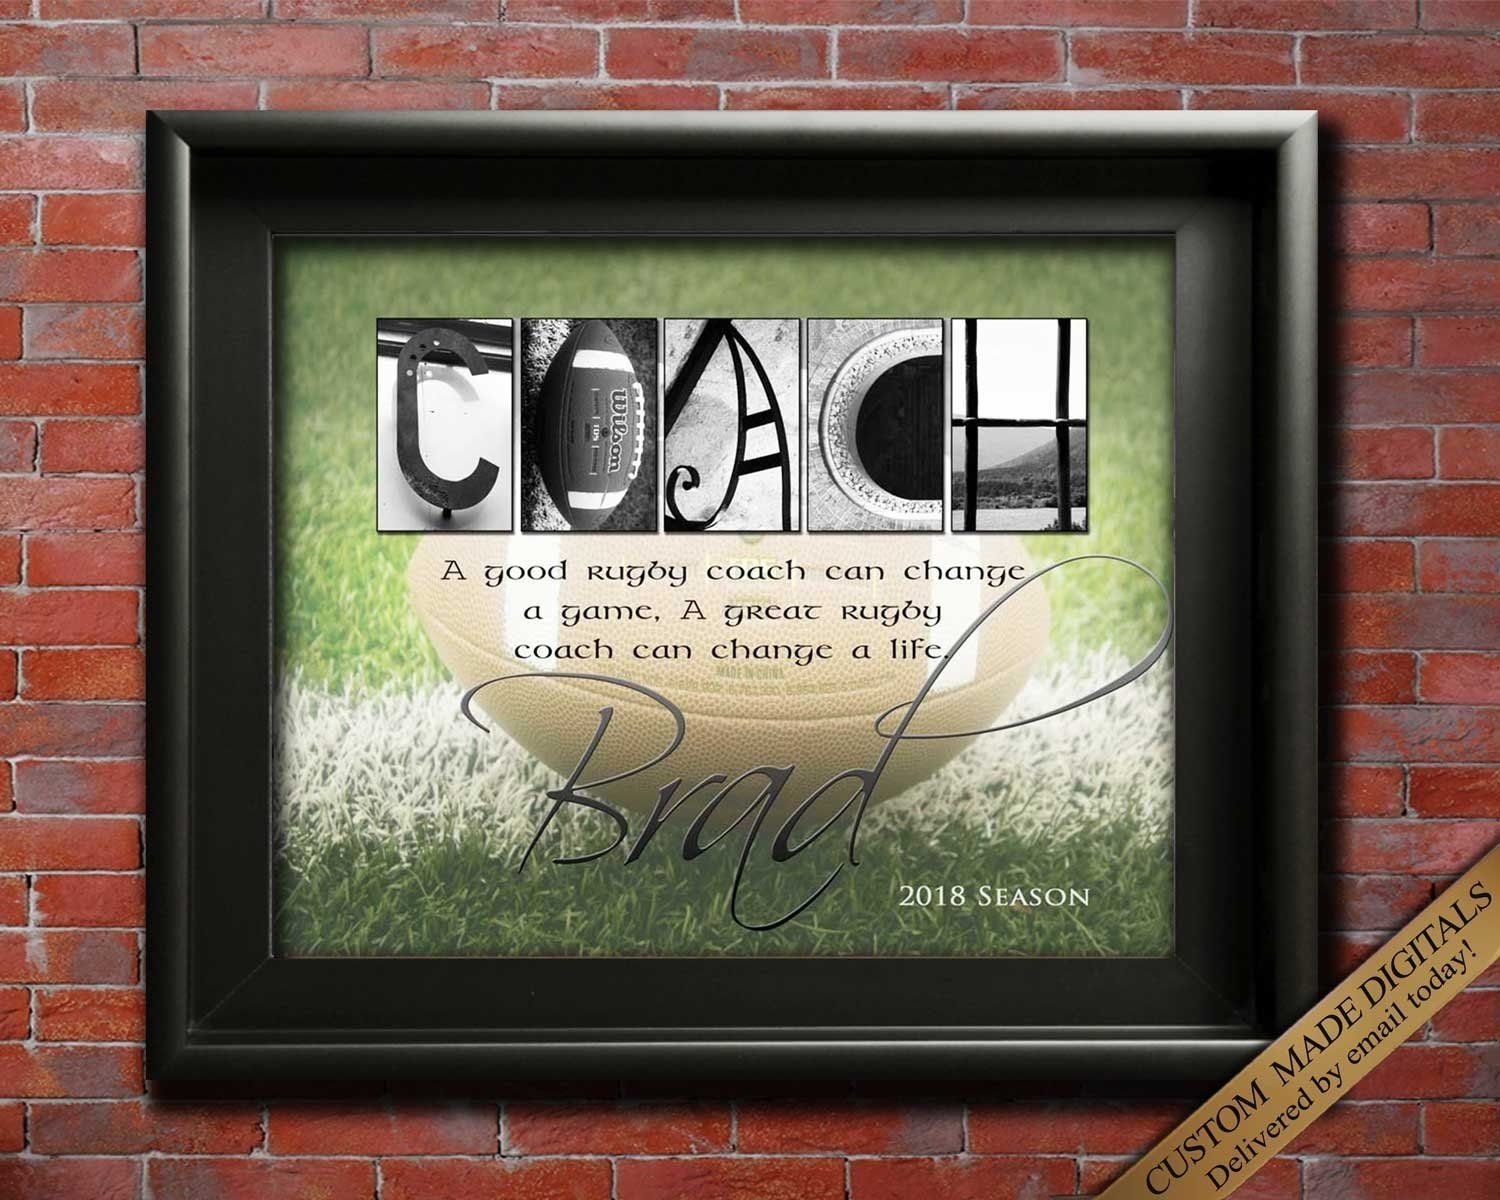 Rugby Gift Gift For Rugby Coach Gift Rugby Gift Ideas Rugby Coaches Sports Coach Rugby Team Rugby Party Coach Appreciation Printable Coach Gifts Rugby Coaching Coach Appreciation Gifts